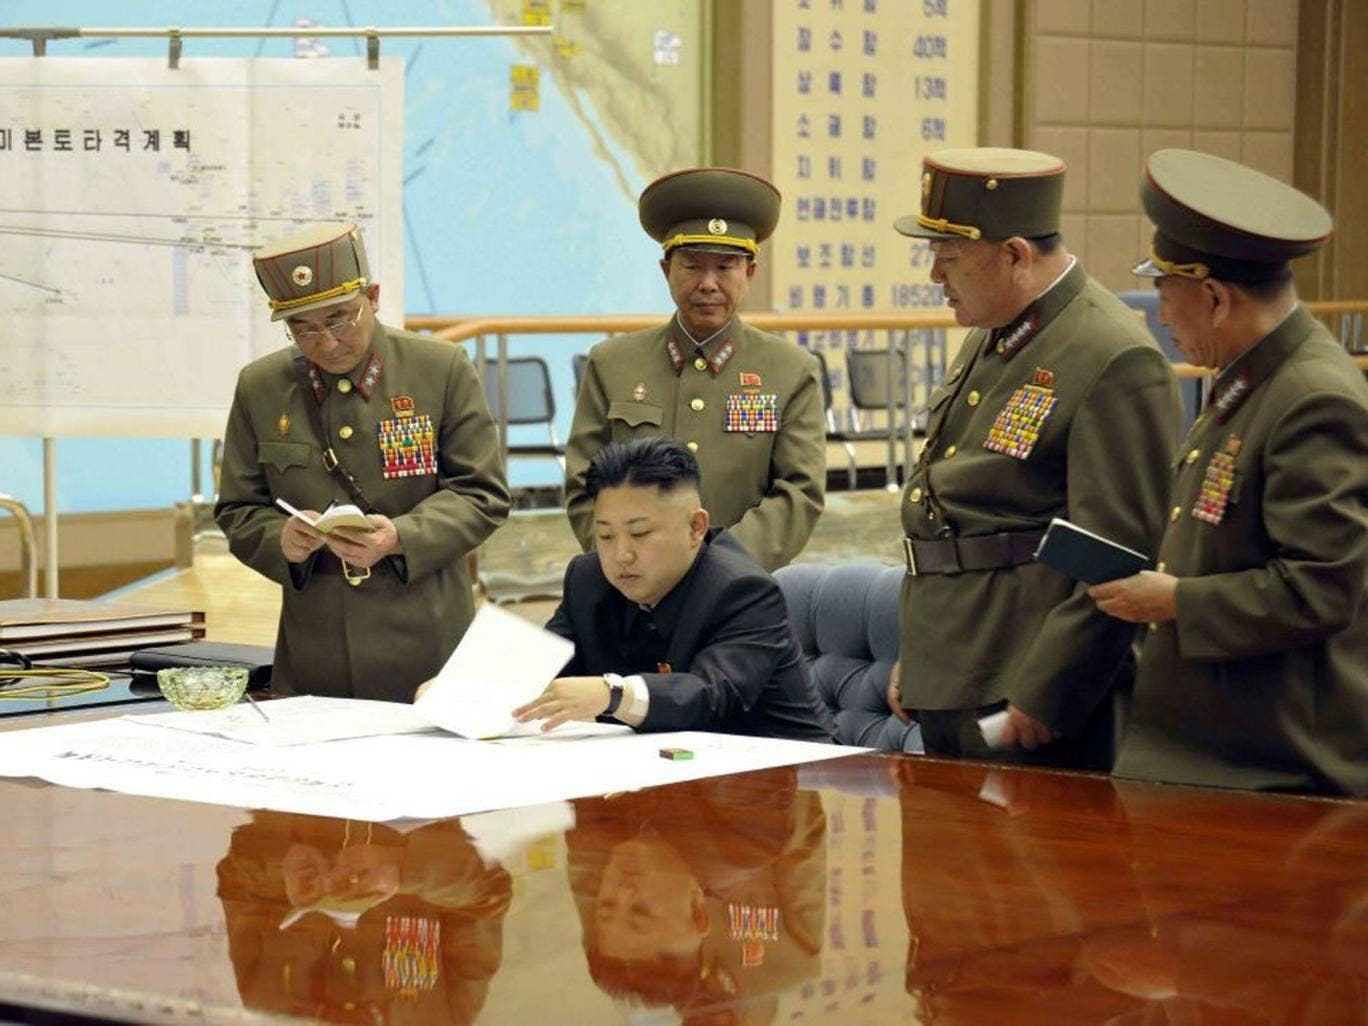 A picture released by the North Korean Central News Agency (KCNA) on 29 March 2013 shows North Korean leader Kim Jong-un (sitting) convening an urgent operation meeting